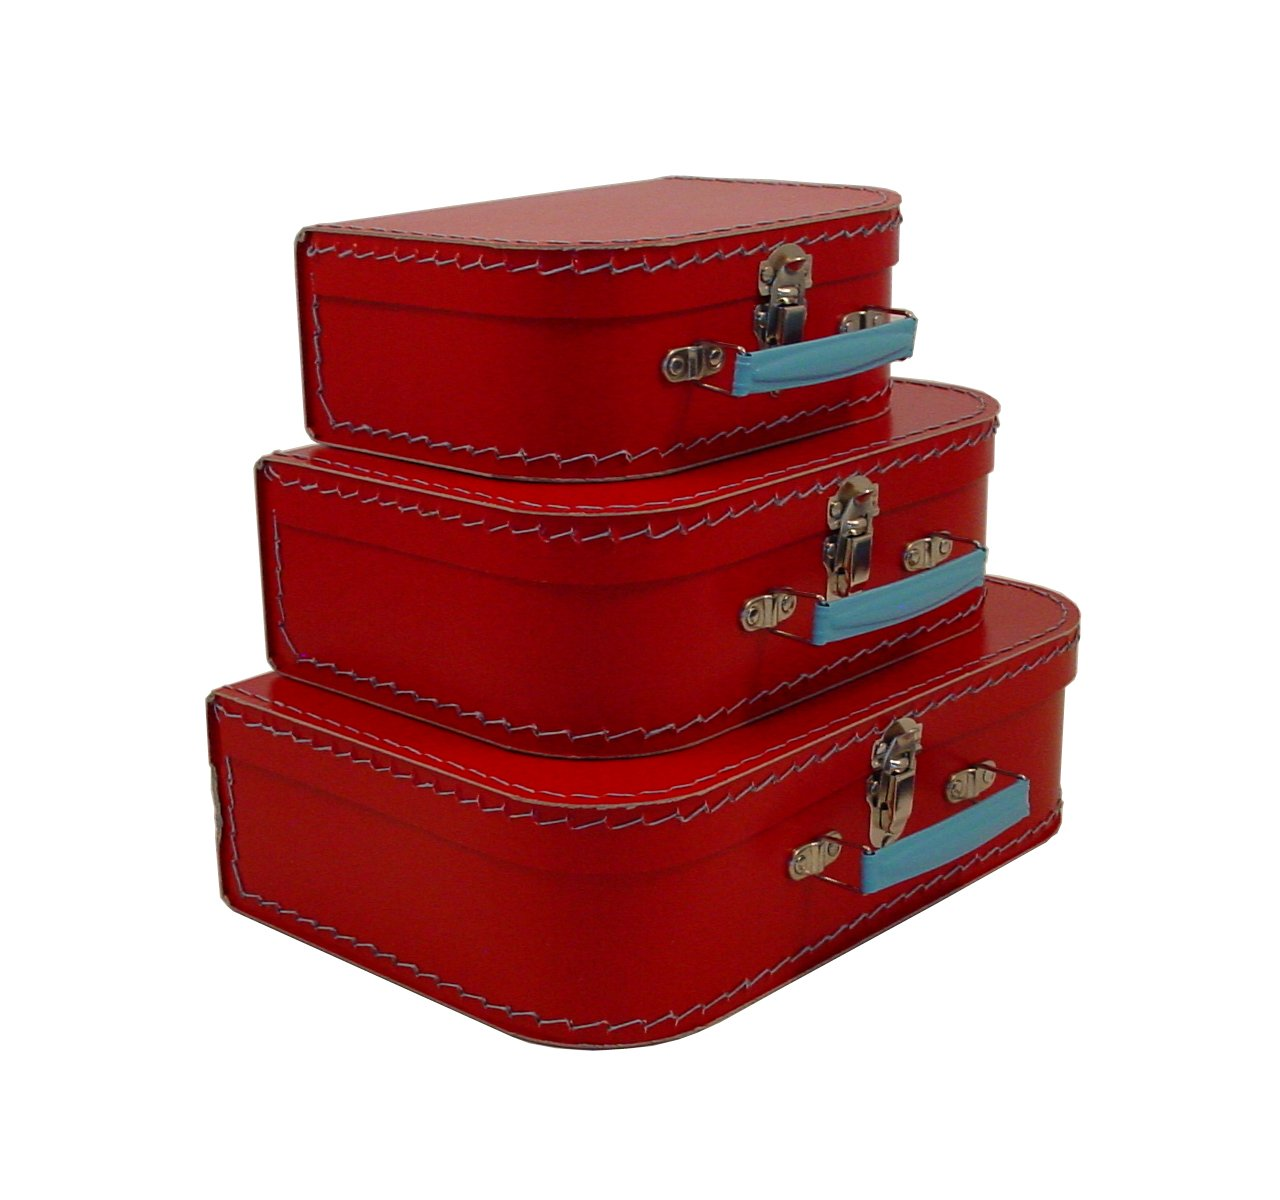 Amazon.com: cargo Vintage Travelers Mini Suitcases, Set of 3, Soft ...